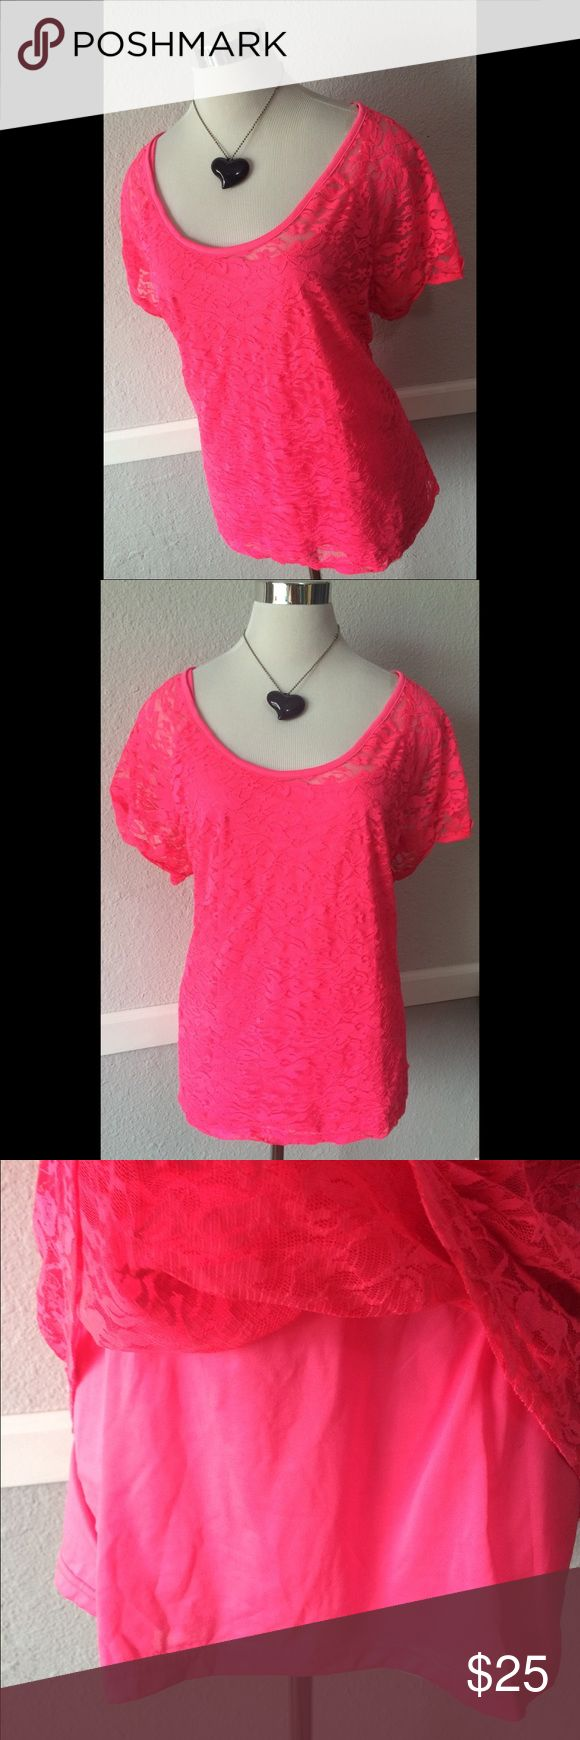 Hot Pink Lace Blouse XL Cute Stylish Fun Pretty Excellent condition. Sheer Lace with included Cami. Both hot Pink. Marked 3x but fits XL best bobbie brooks Tops Blouses